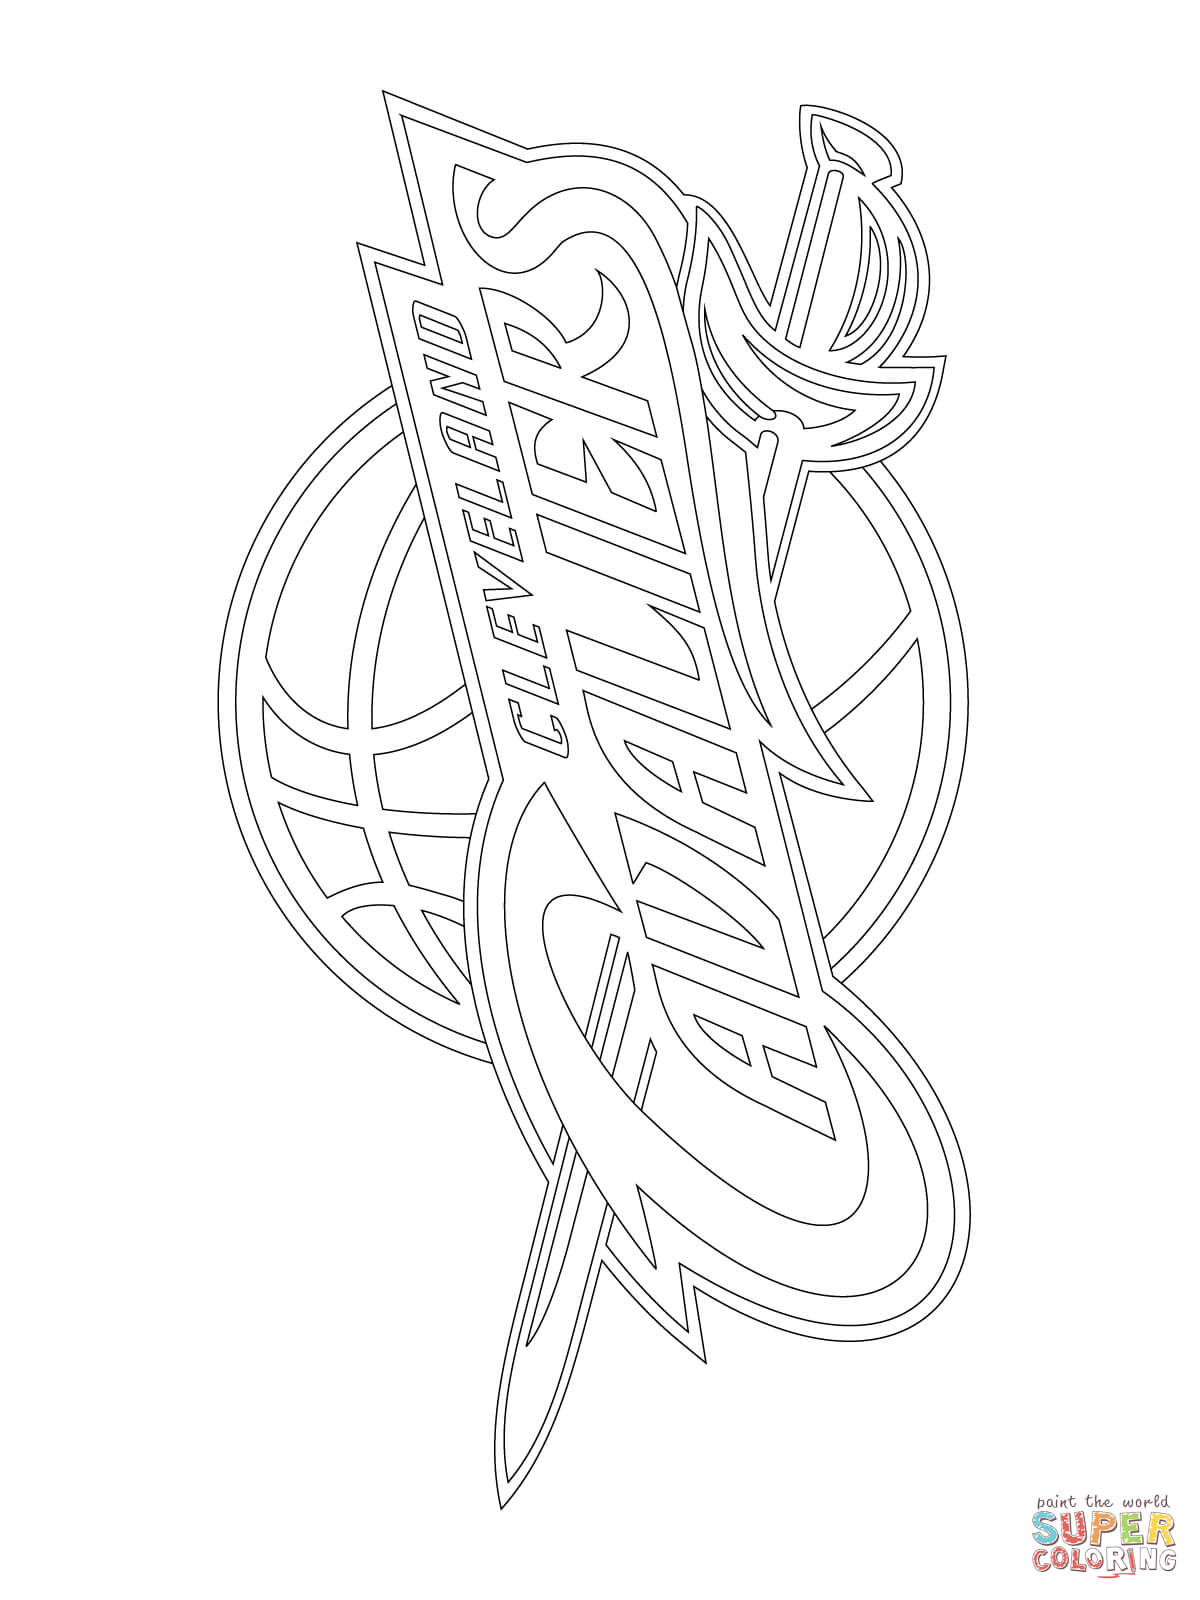 Coloring Pages Nba : Nba logo coloring pages home